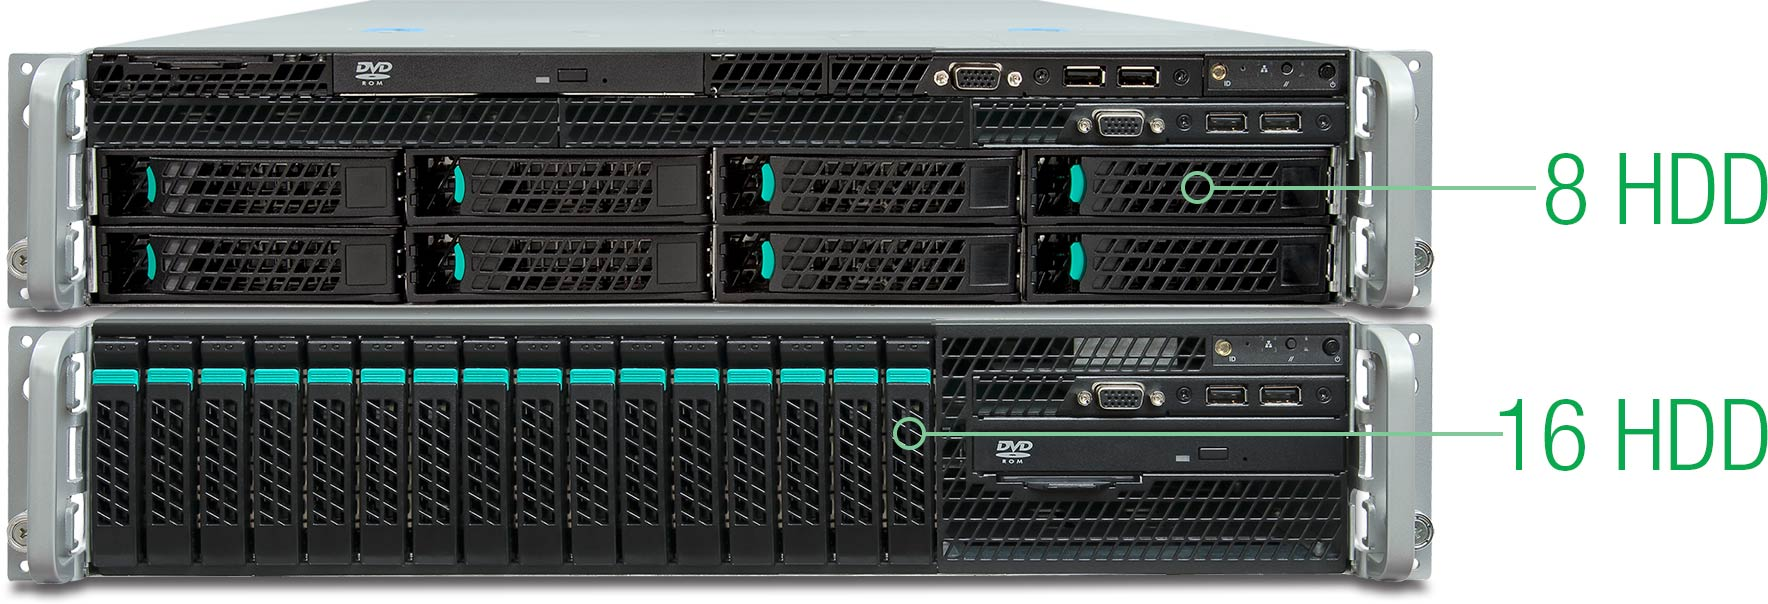 E-2900 R3 – Enterprise Communications Server